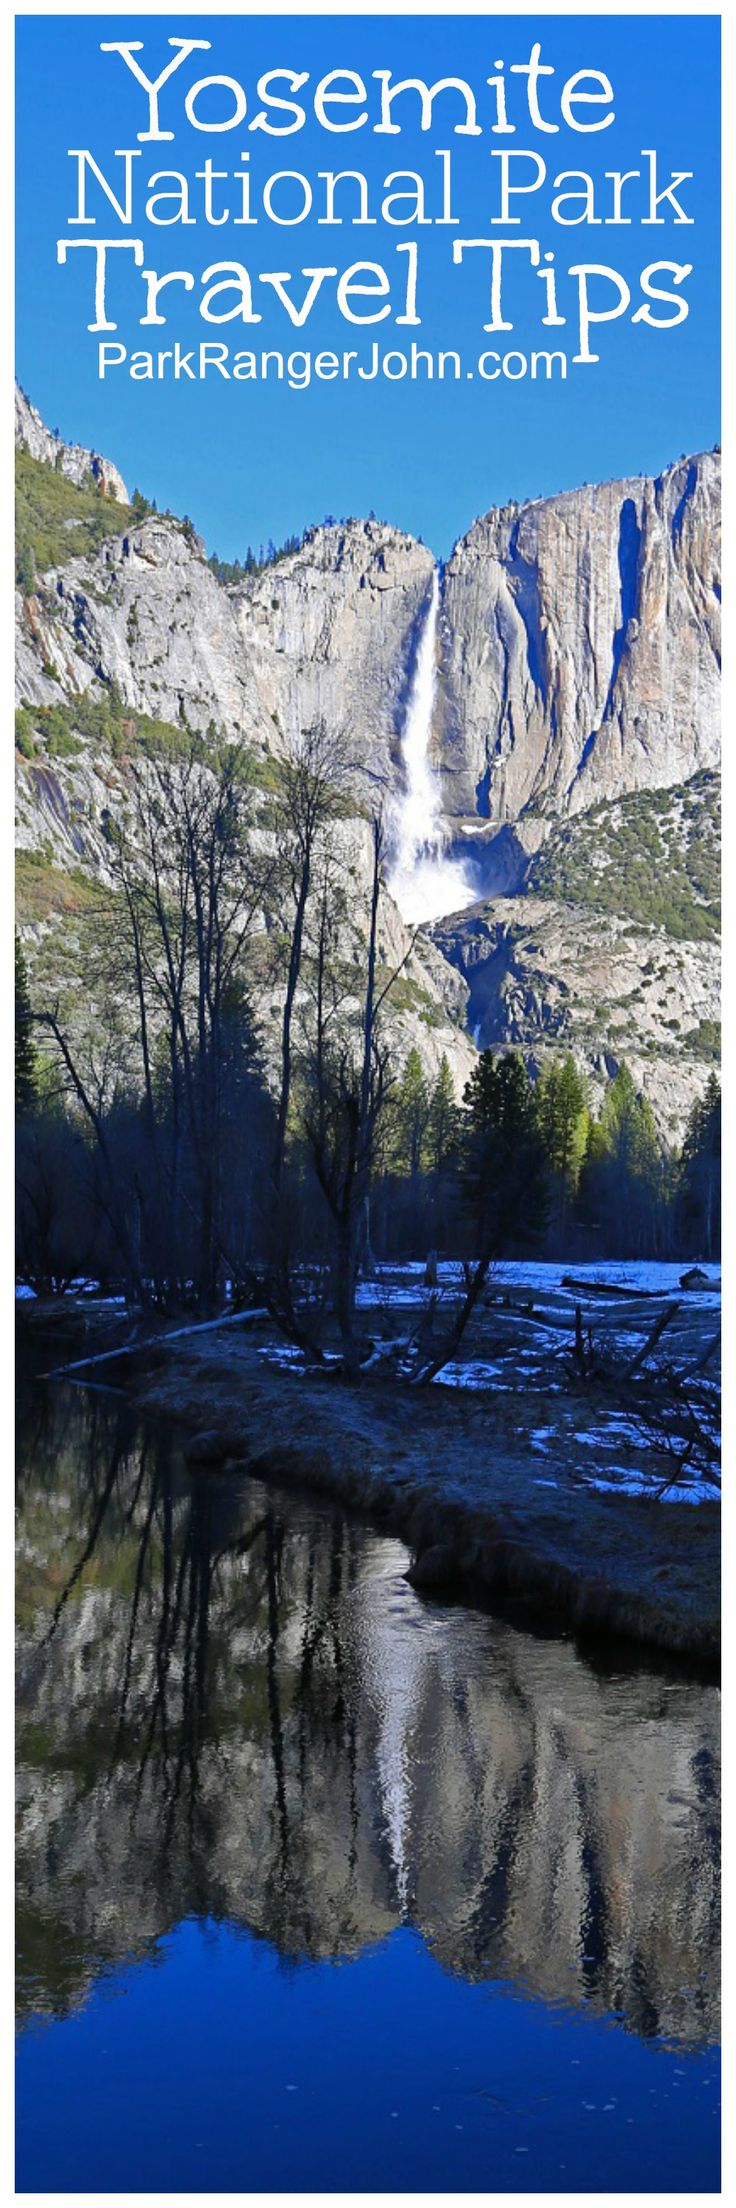 Yosemite National Park Travel Tips to help you plan your trip to California! Things to do, lodging, hiking, camping, photography and more! via @ParkRangerJohn